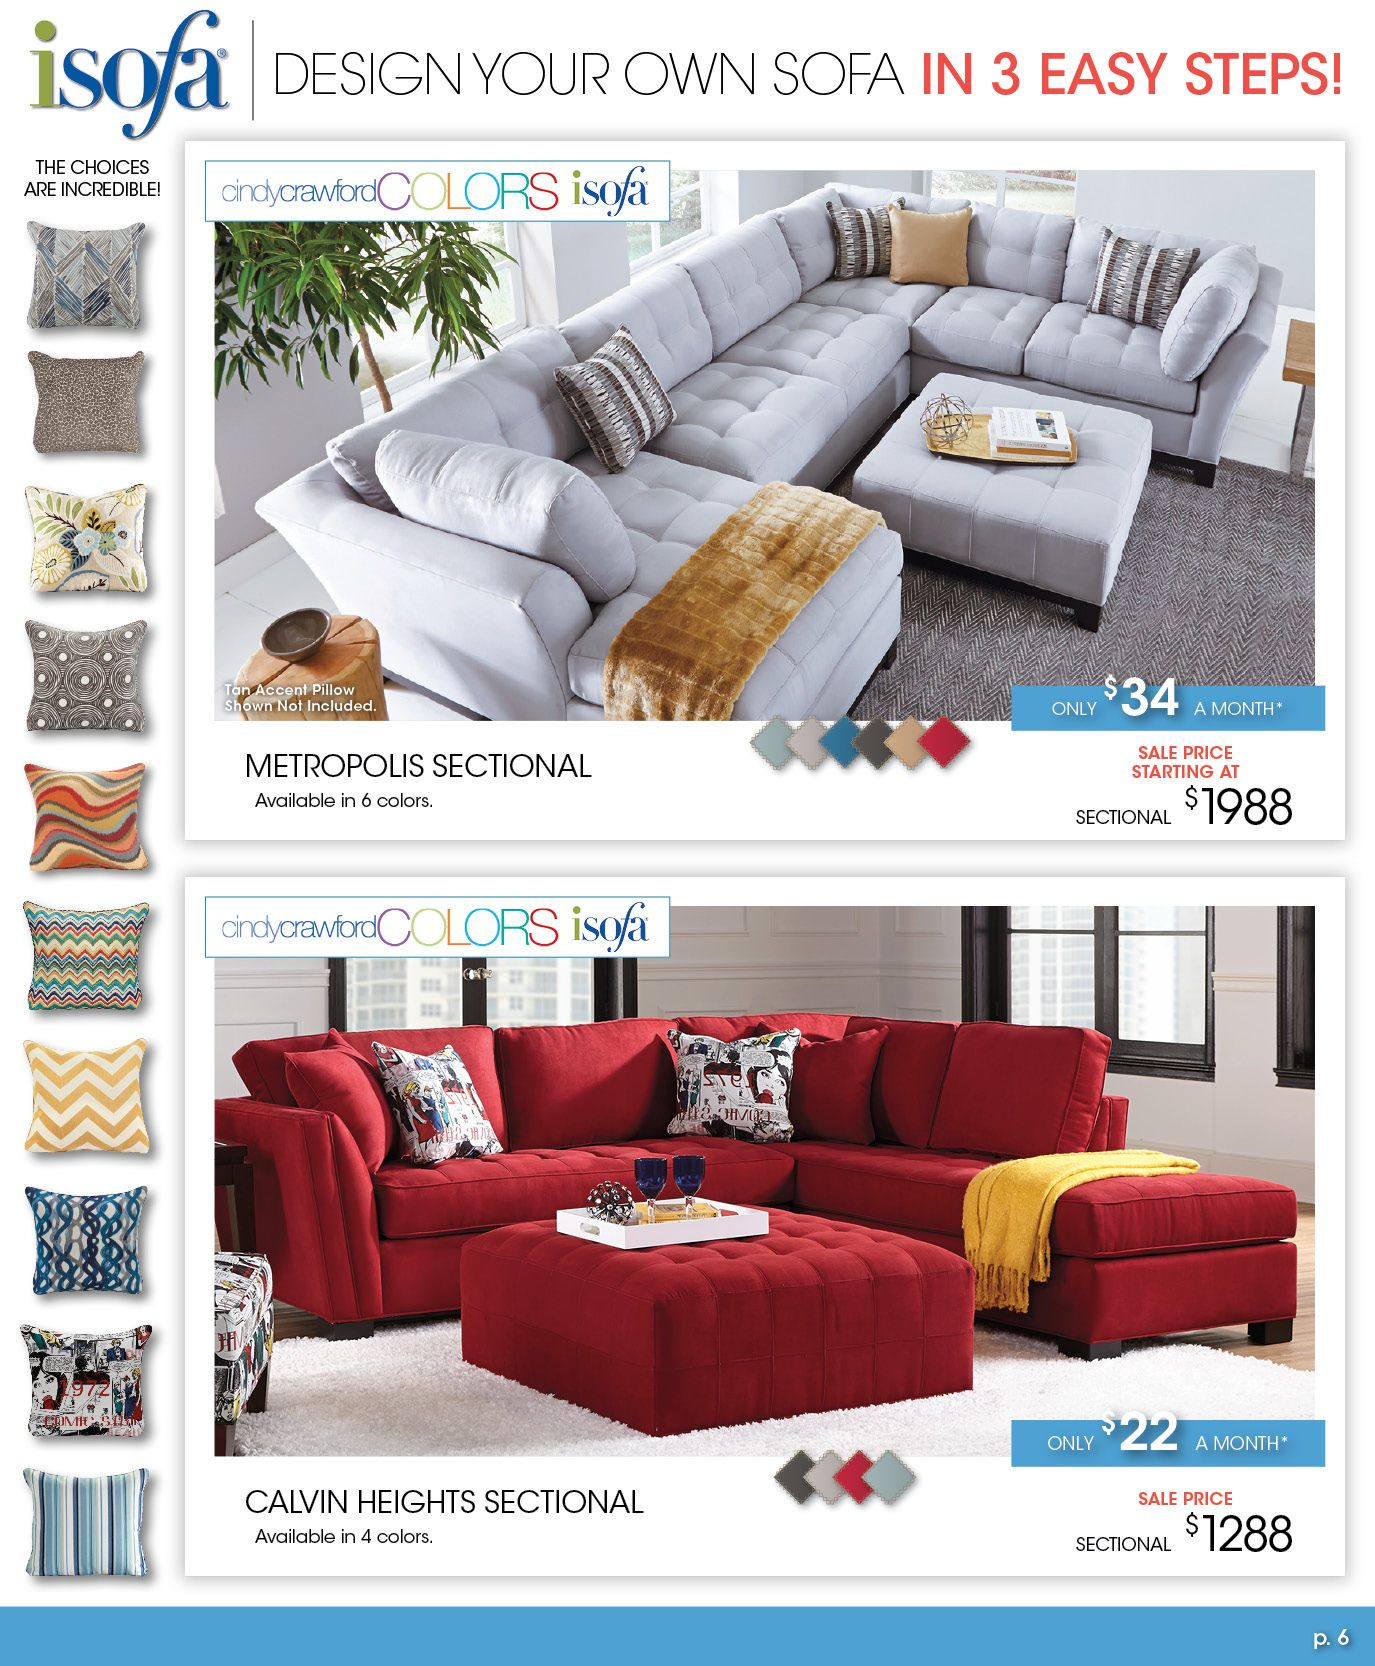 Affordable Home Furniture For Sale From Rooms To Go. Best